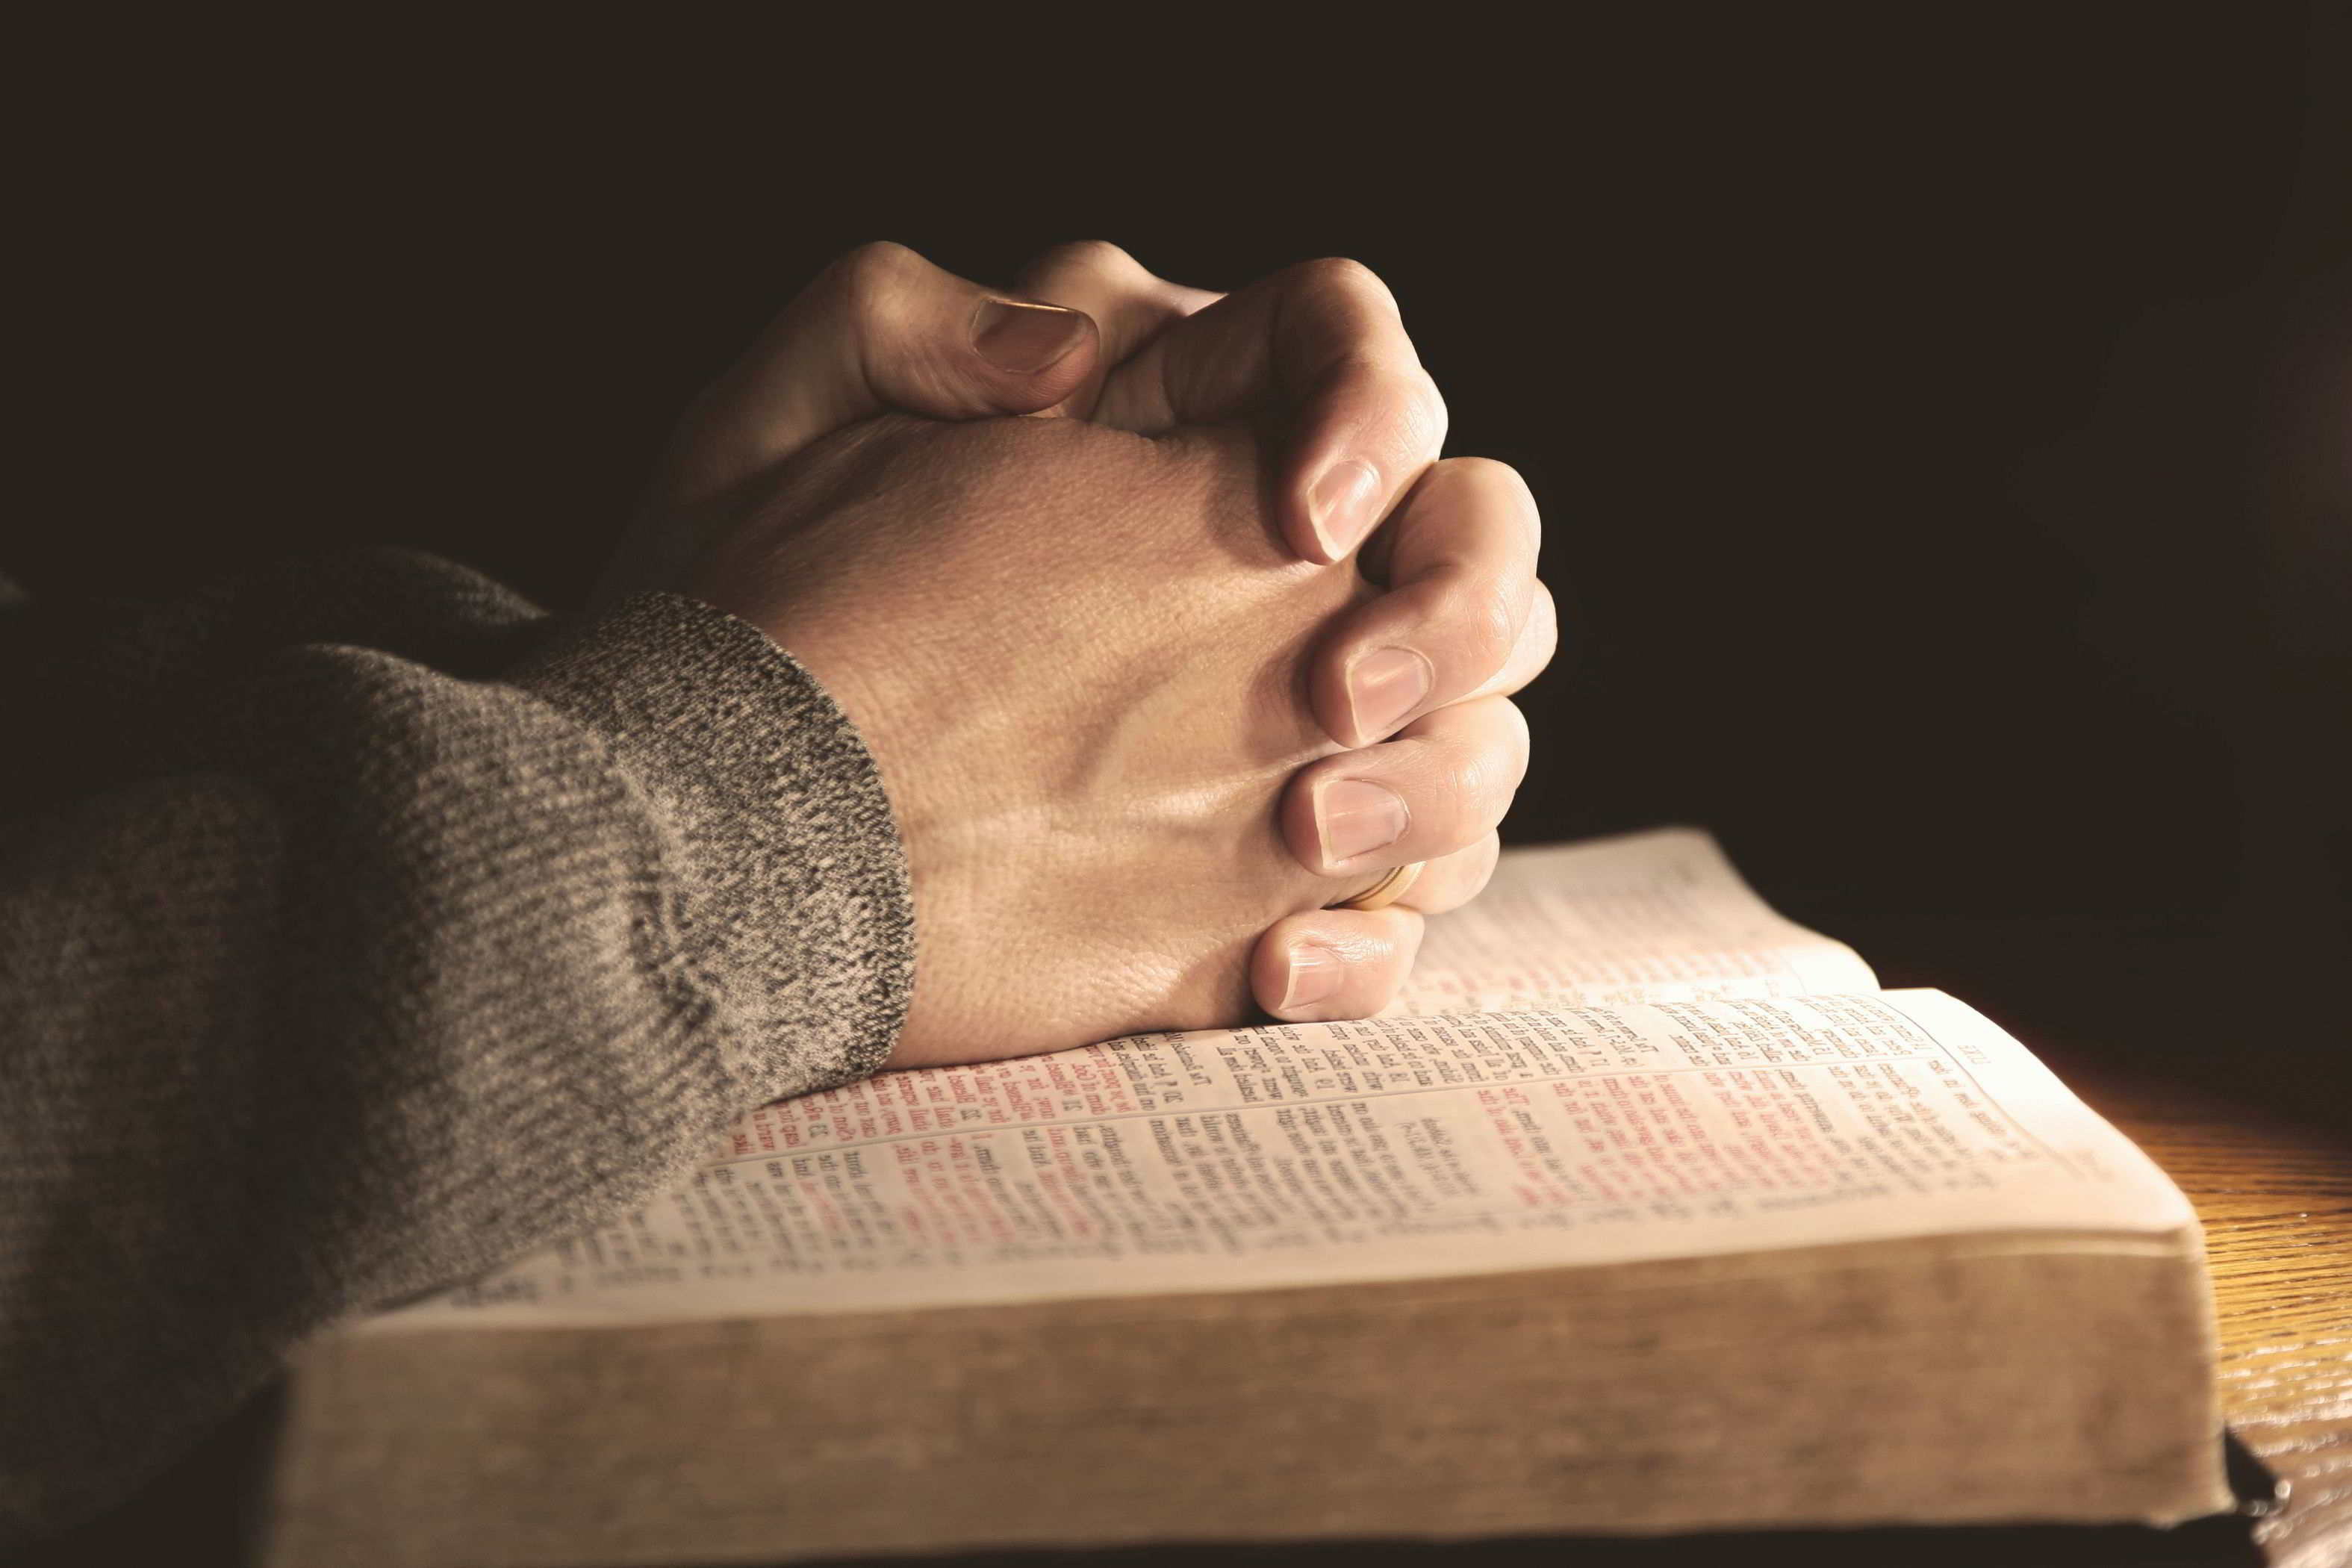 pray single guys Prayers for young black men, ft lauderdale, florida 354 likes this page is set up to encourage the facebook community to pray for young black men in.